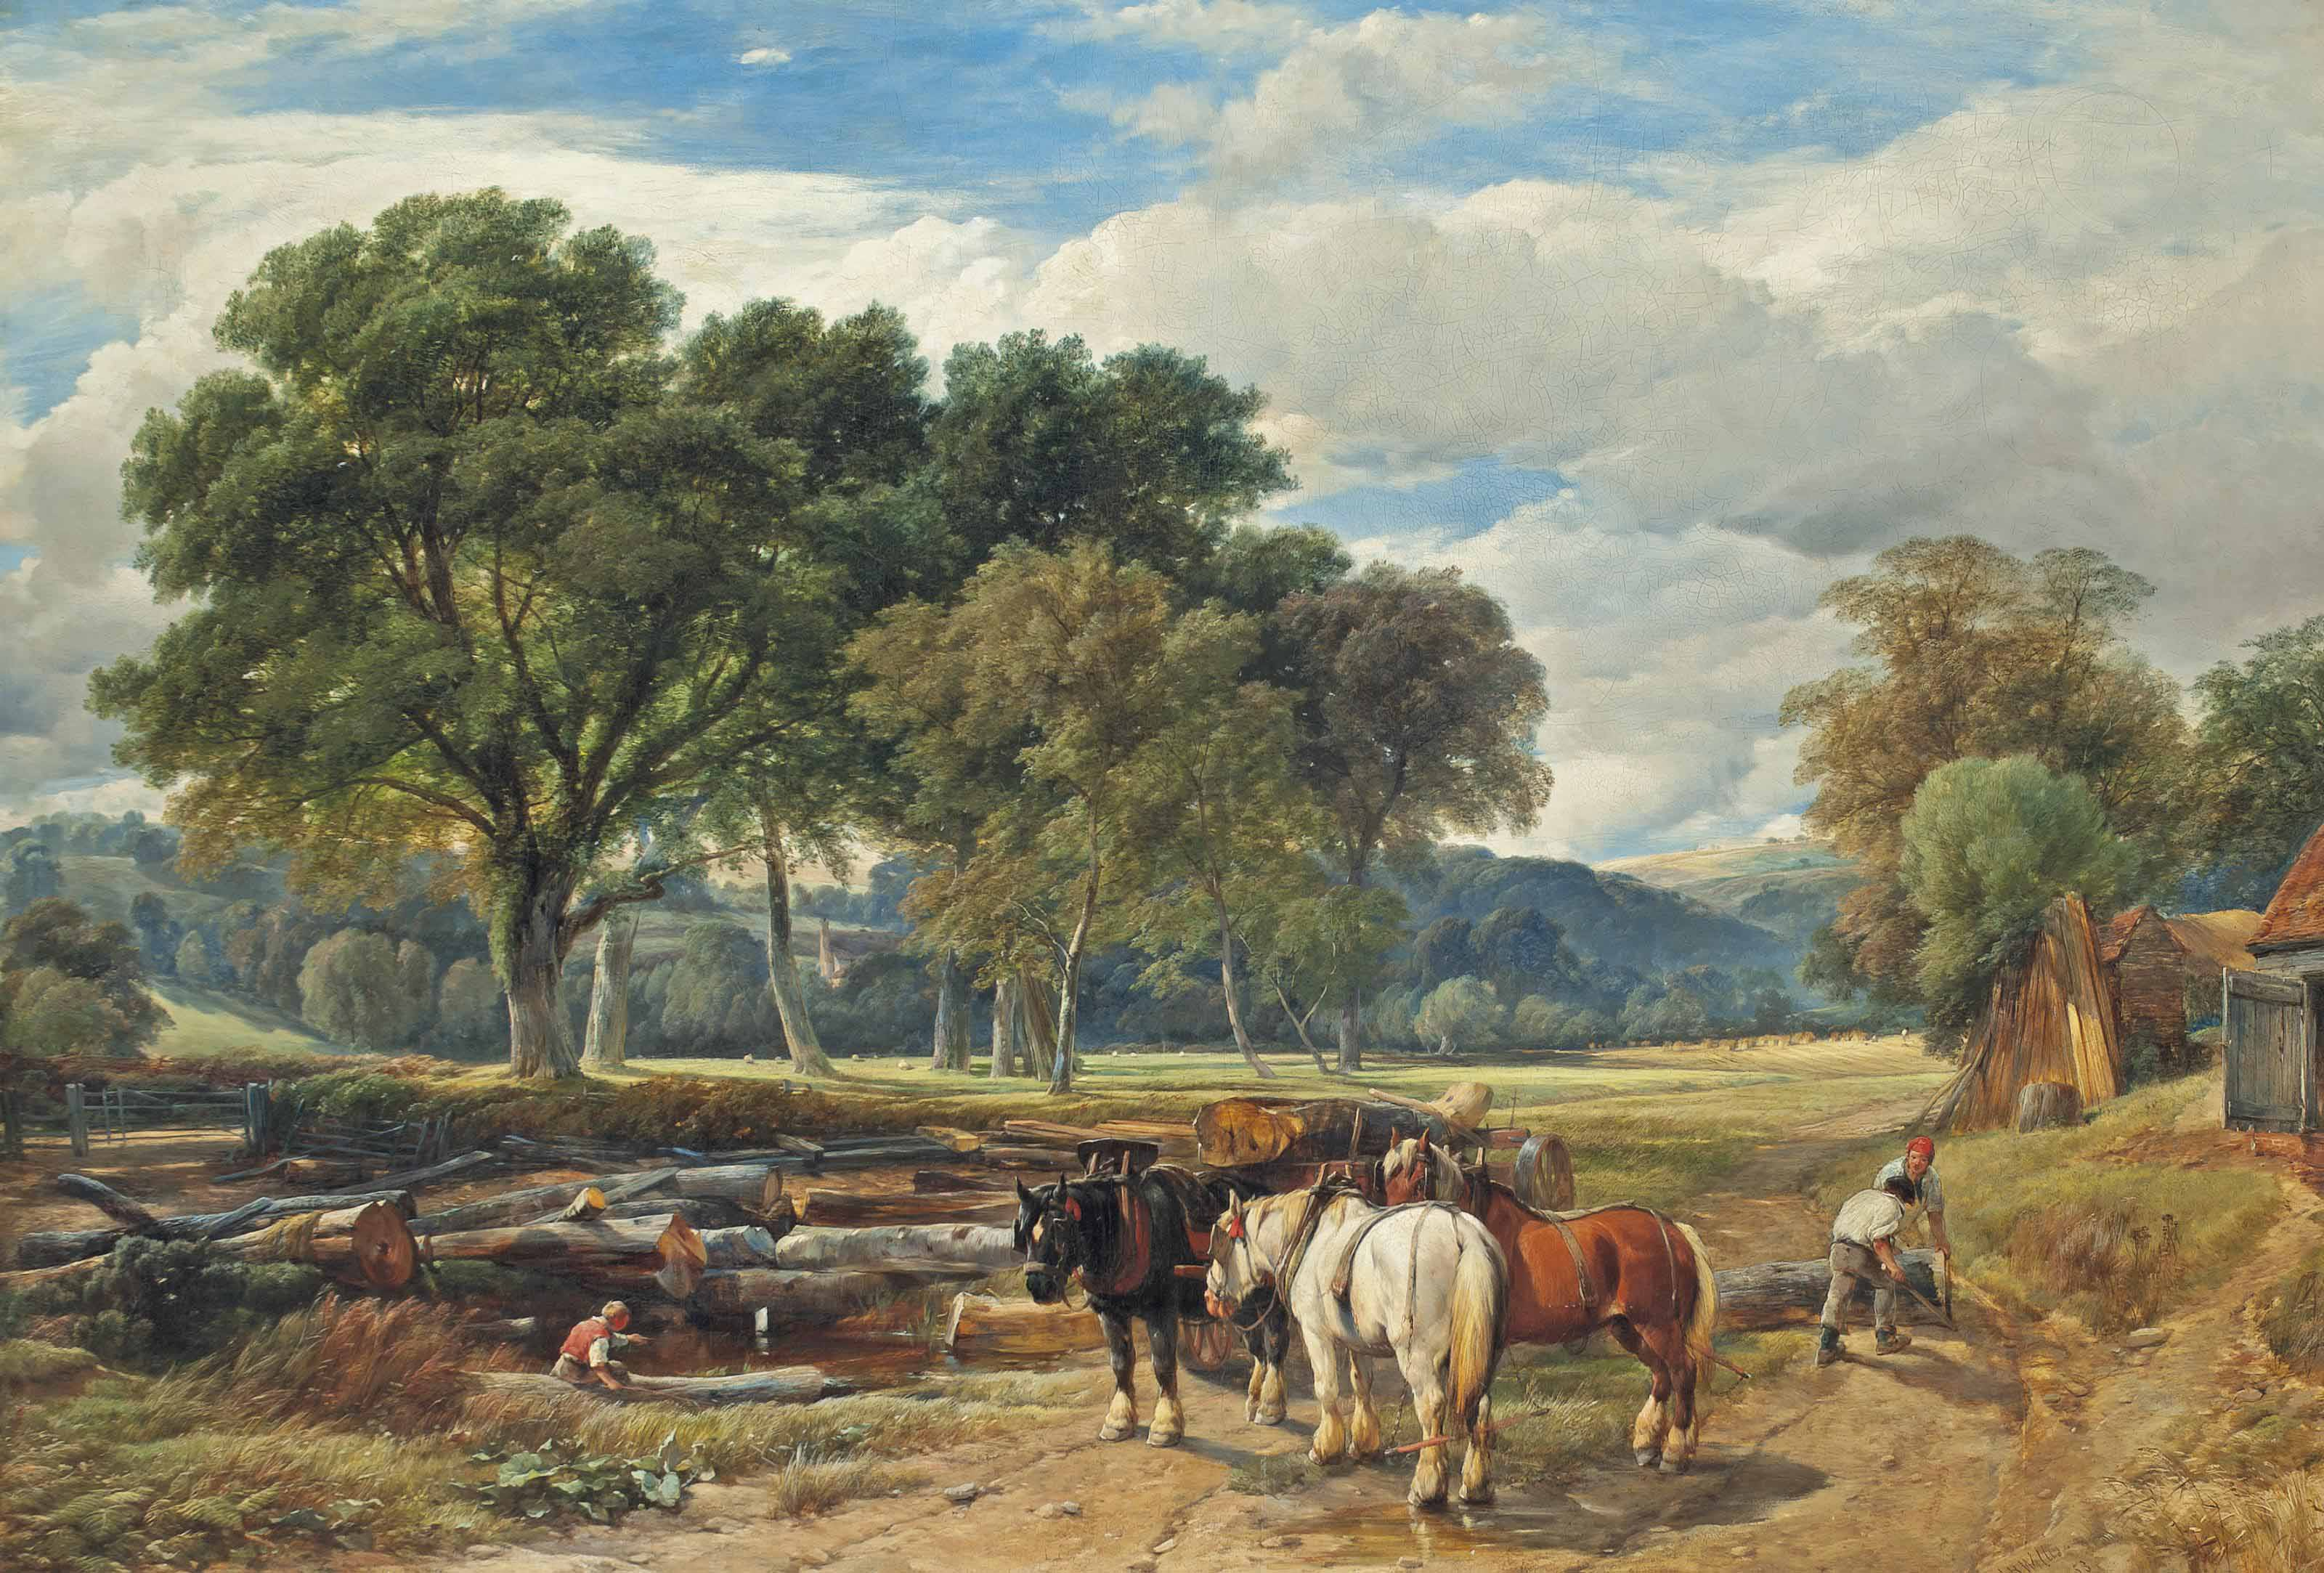 Loggers in an extensive summer landscape